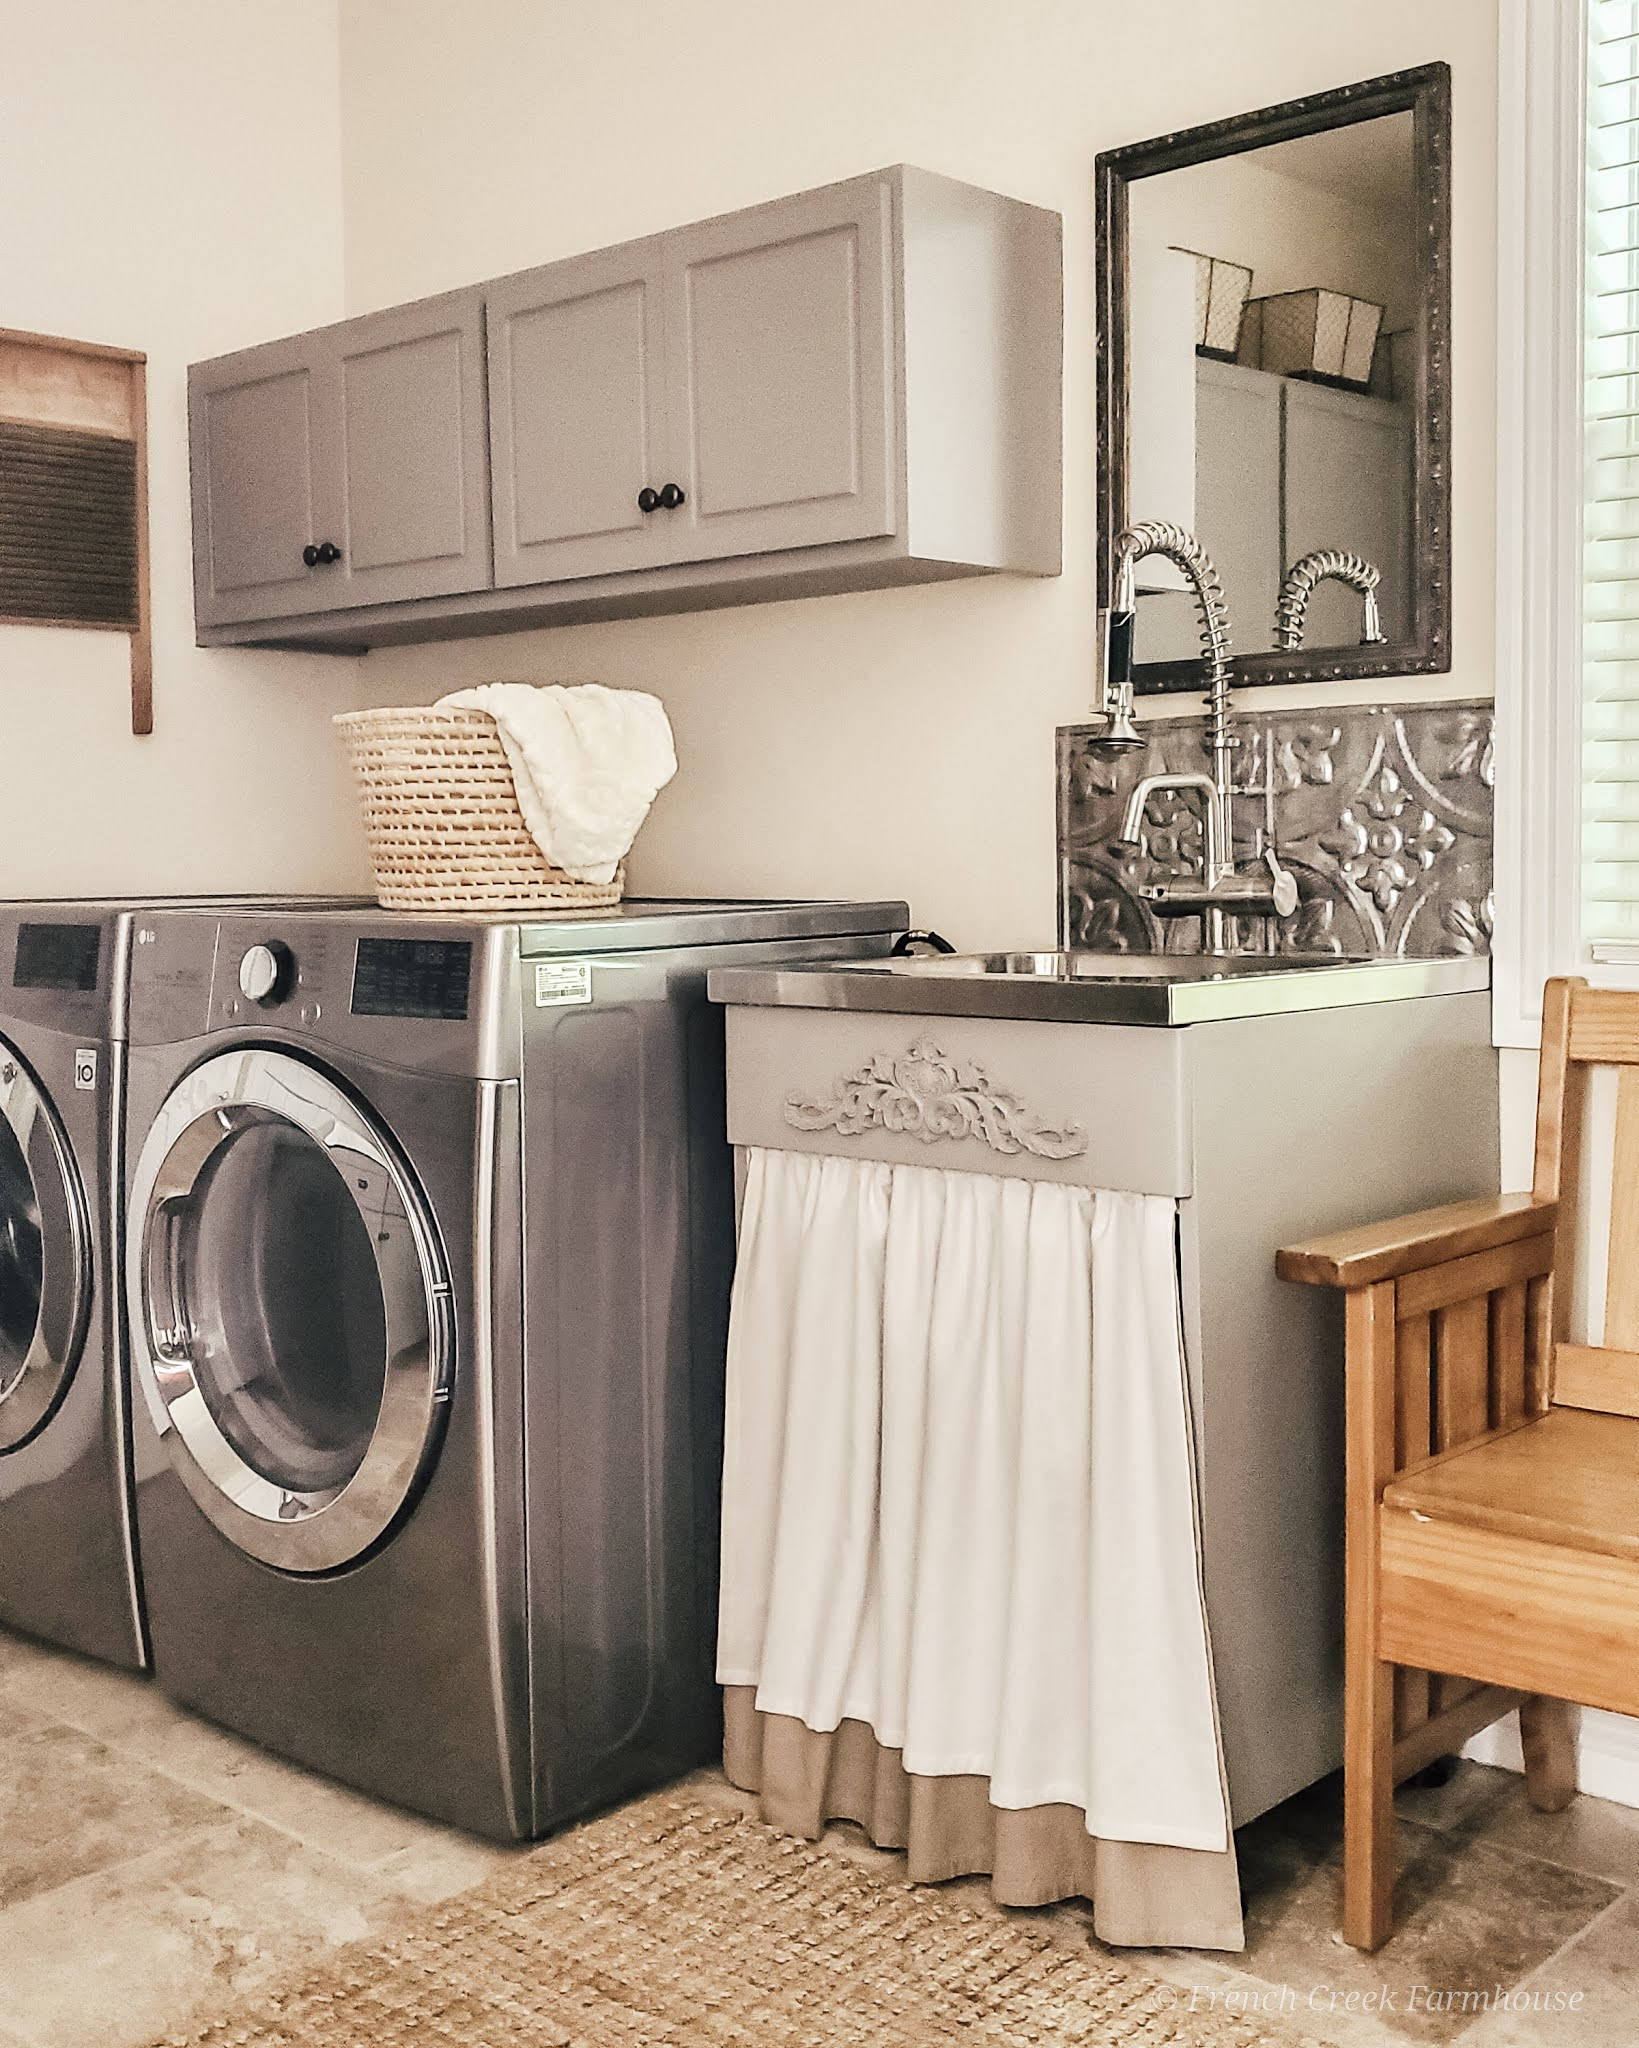 See the before and after of our farmhouse laundry room renovation